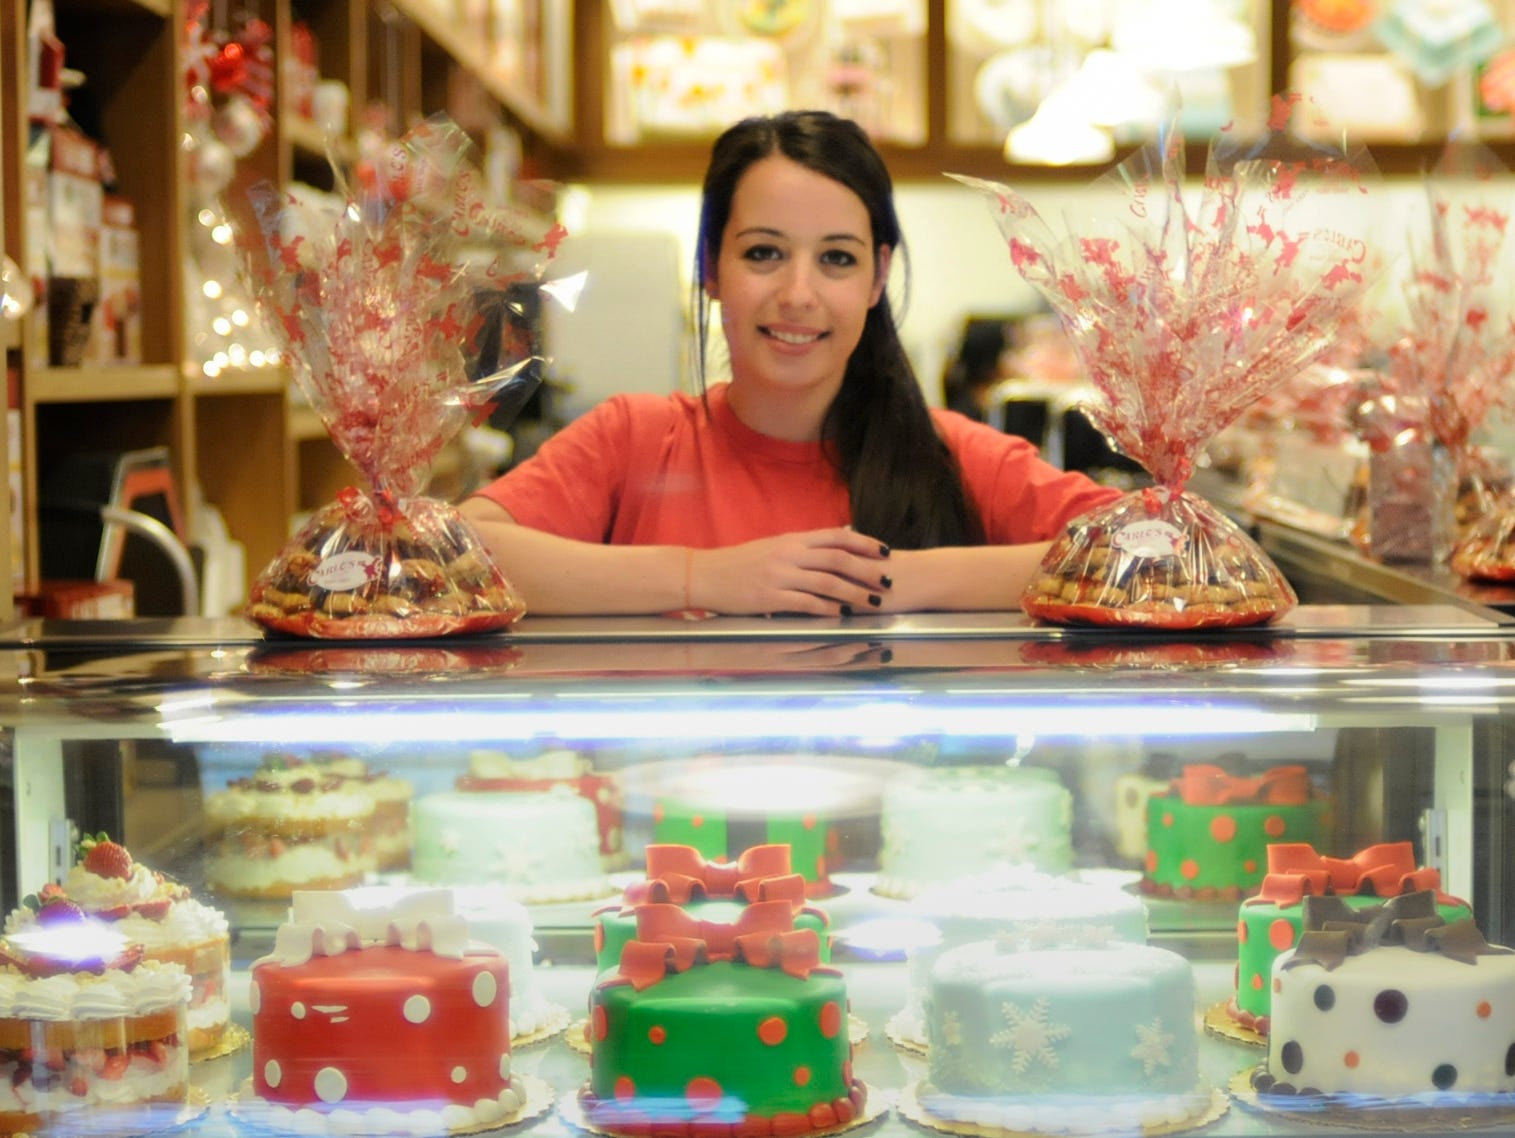 Carlo's Bakery Ridgewood General Manager, Marissa Lopez, among colorful cakes and pastries after the opening in December 2013.